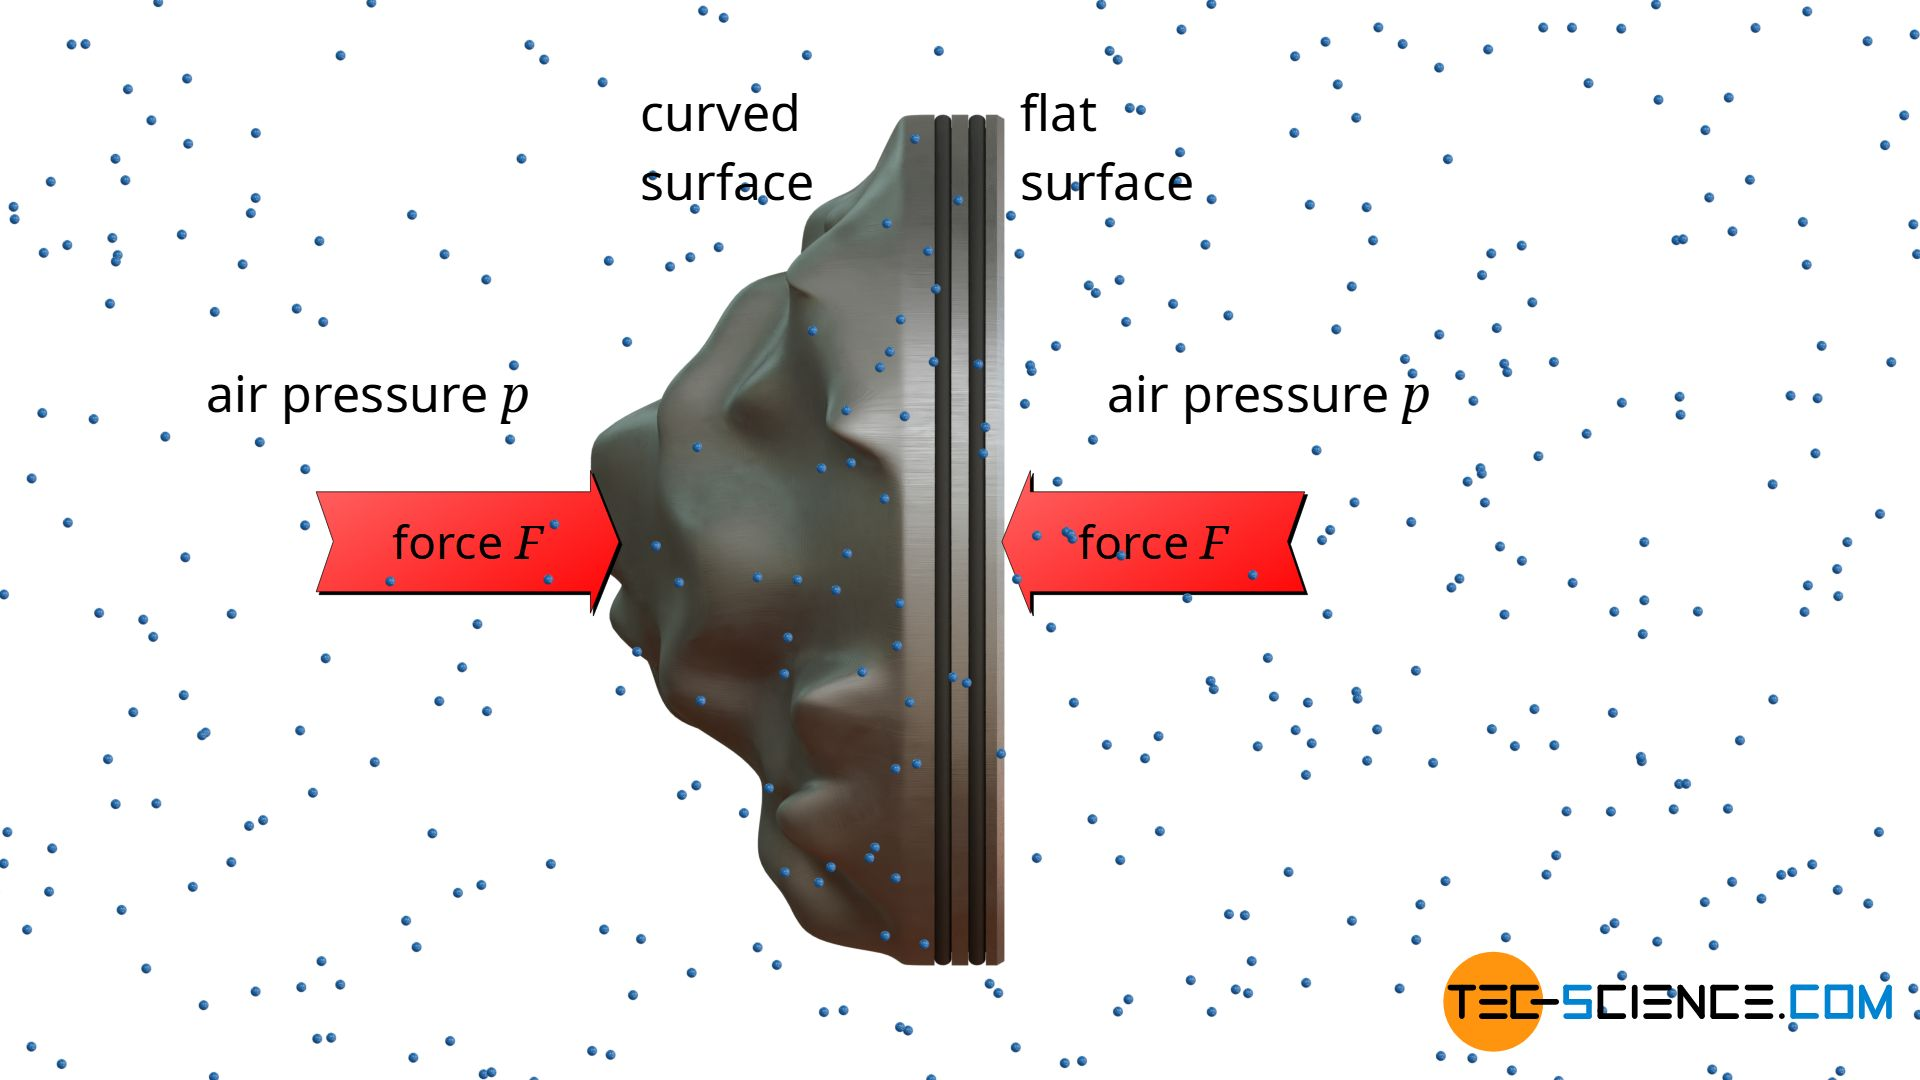 Effect of air pressure on differently curved surfaces